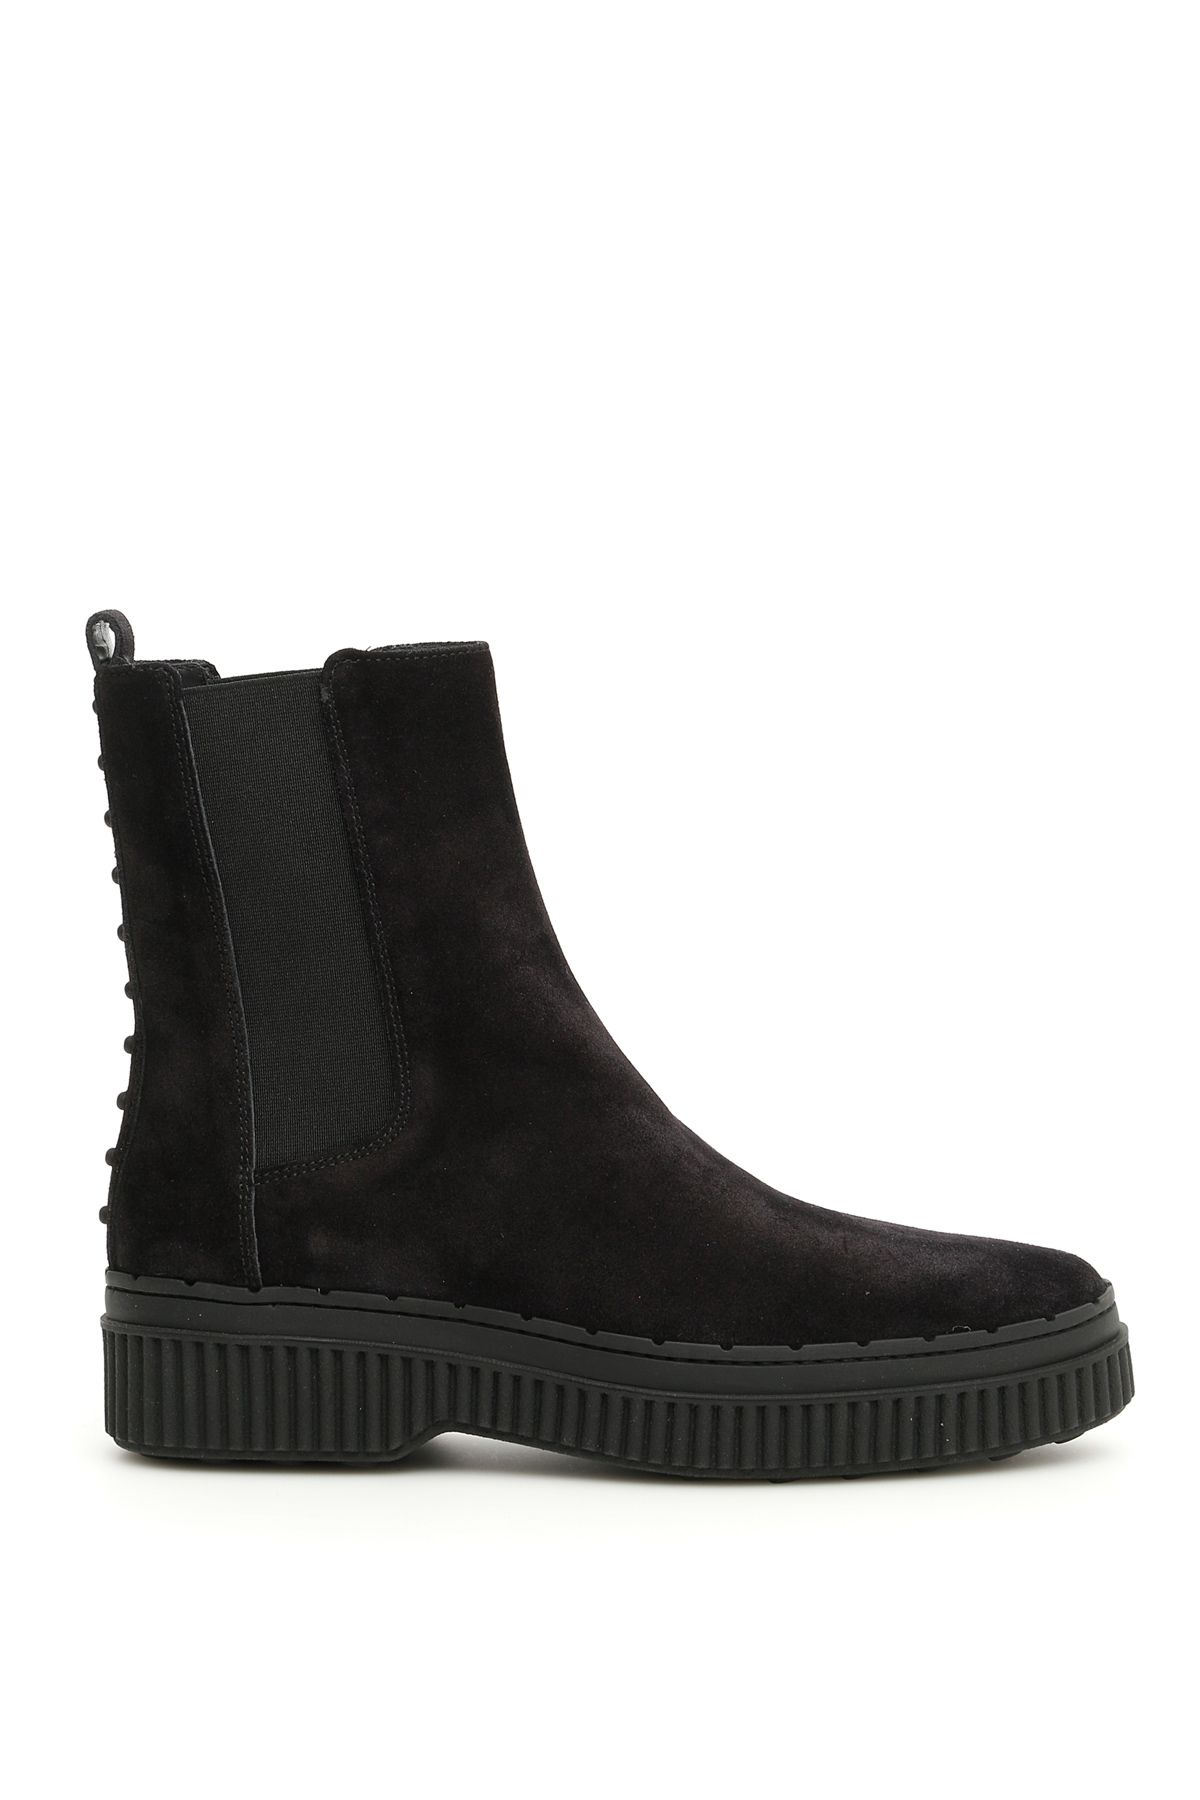 Tod's Boots With Gommino On The Back